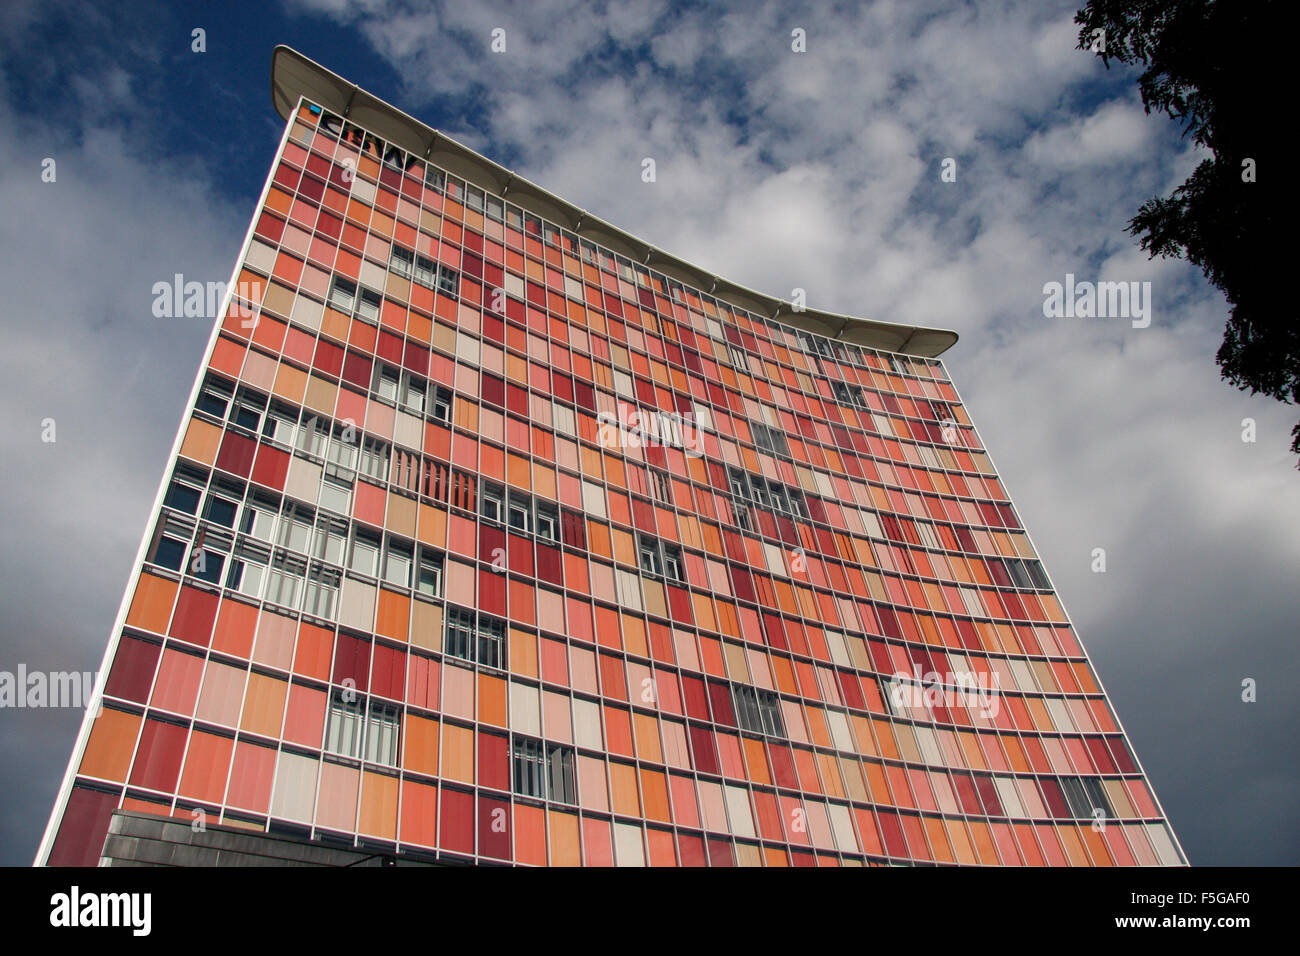 the gsw hochhaus the new headquarters for the internet startup stock photo royalty free. Black Bedroom Furniture Sets. Home Design Ideas